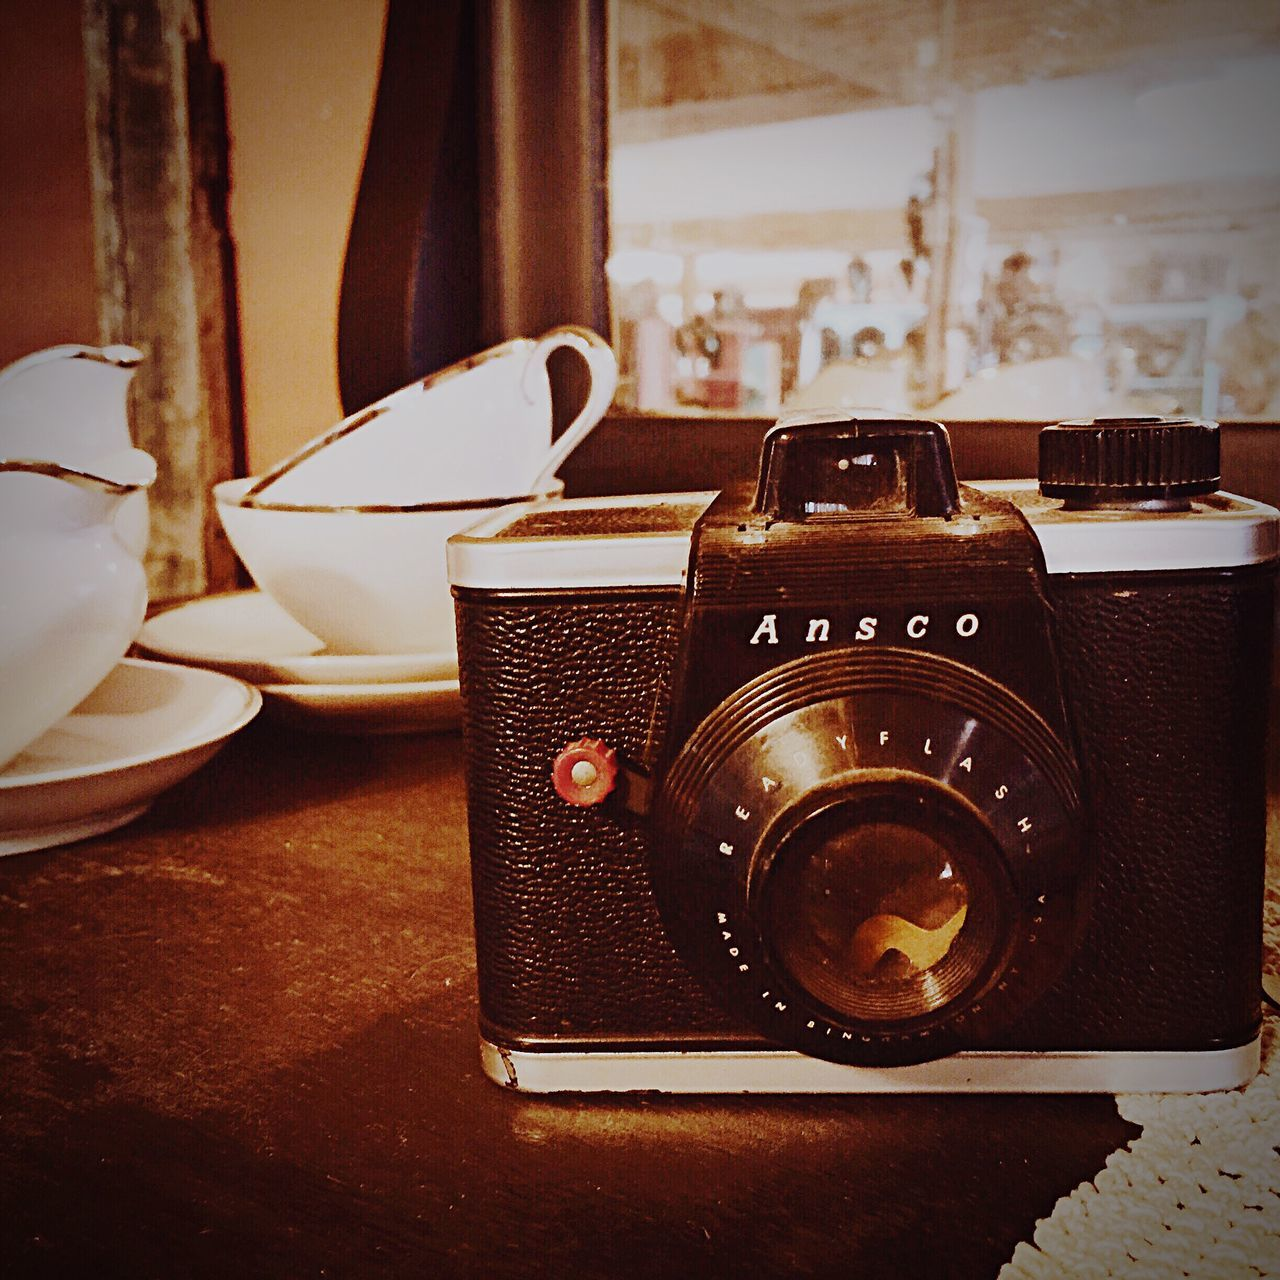 camera - photographic equipment, indoors, photography themes, table, retro styled, old-fashioned, still life, technology, no people, close-up, vintage, day